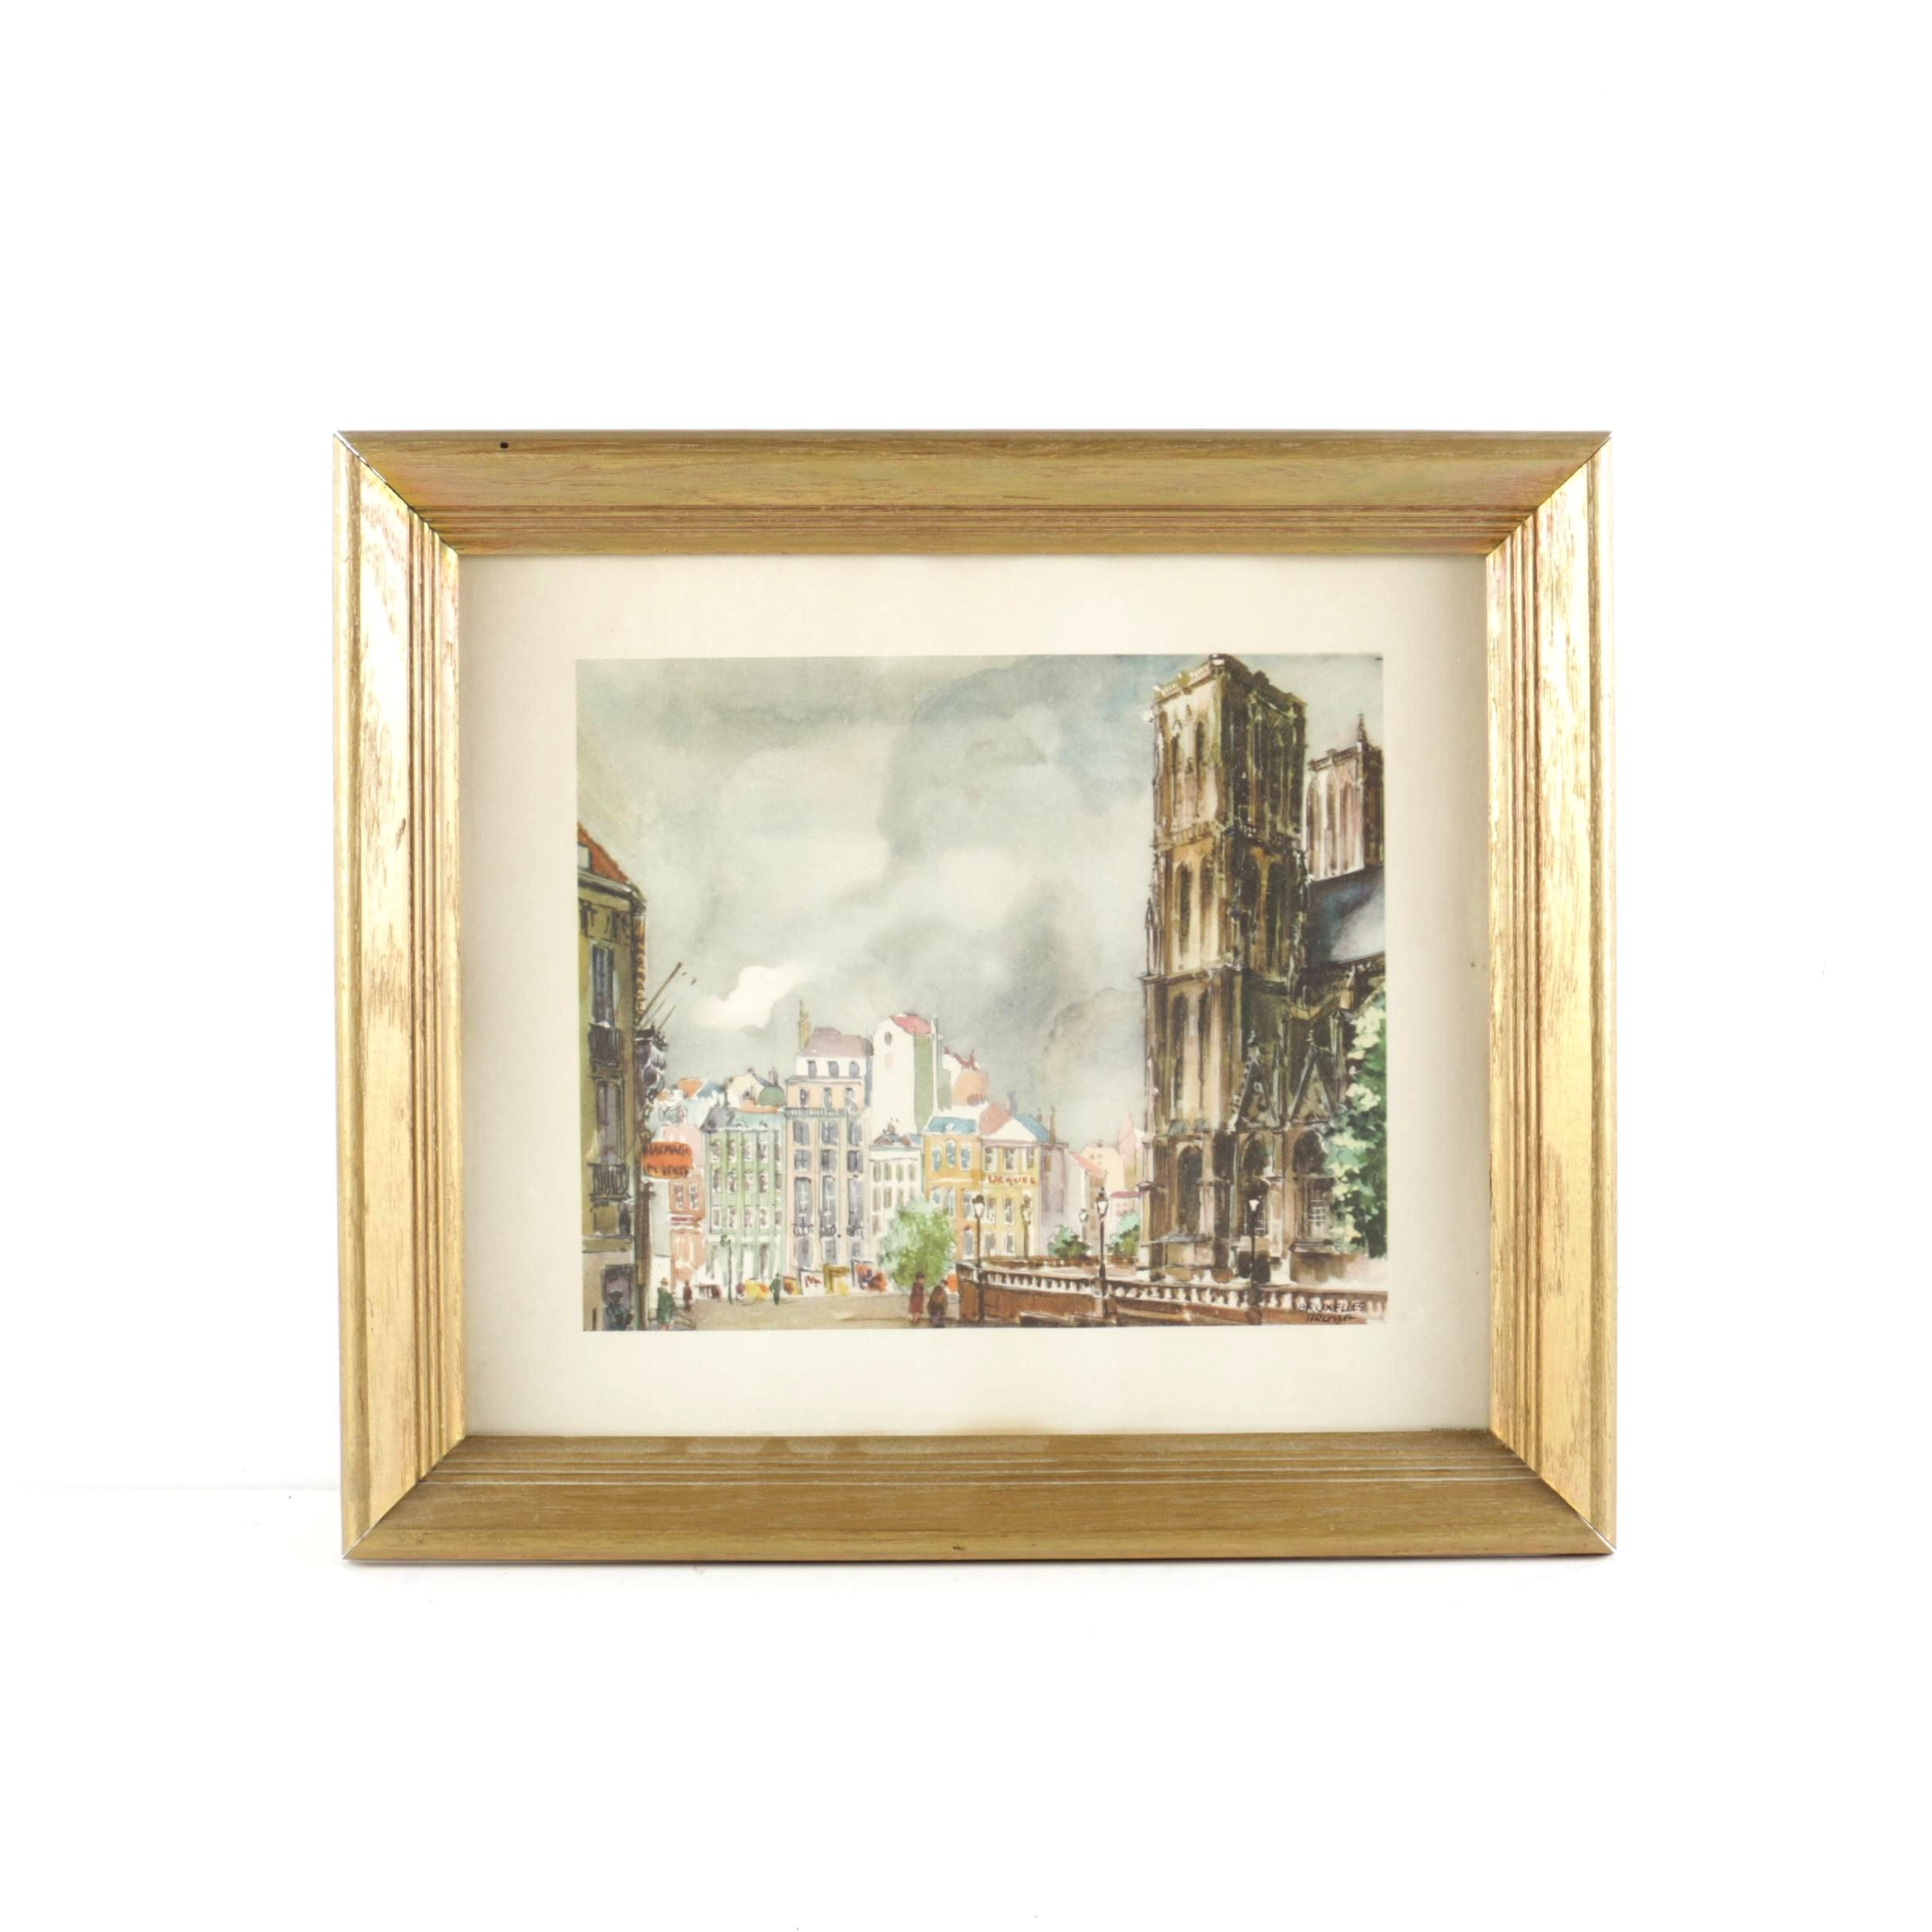 Framed Offset Lithograph After Watercolor of Brussels, Belgium